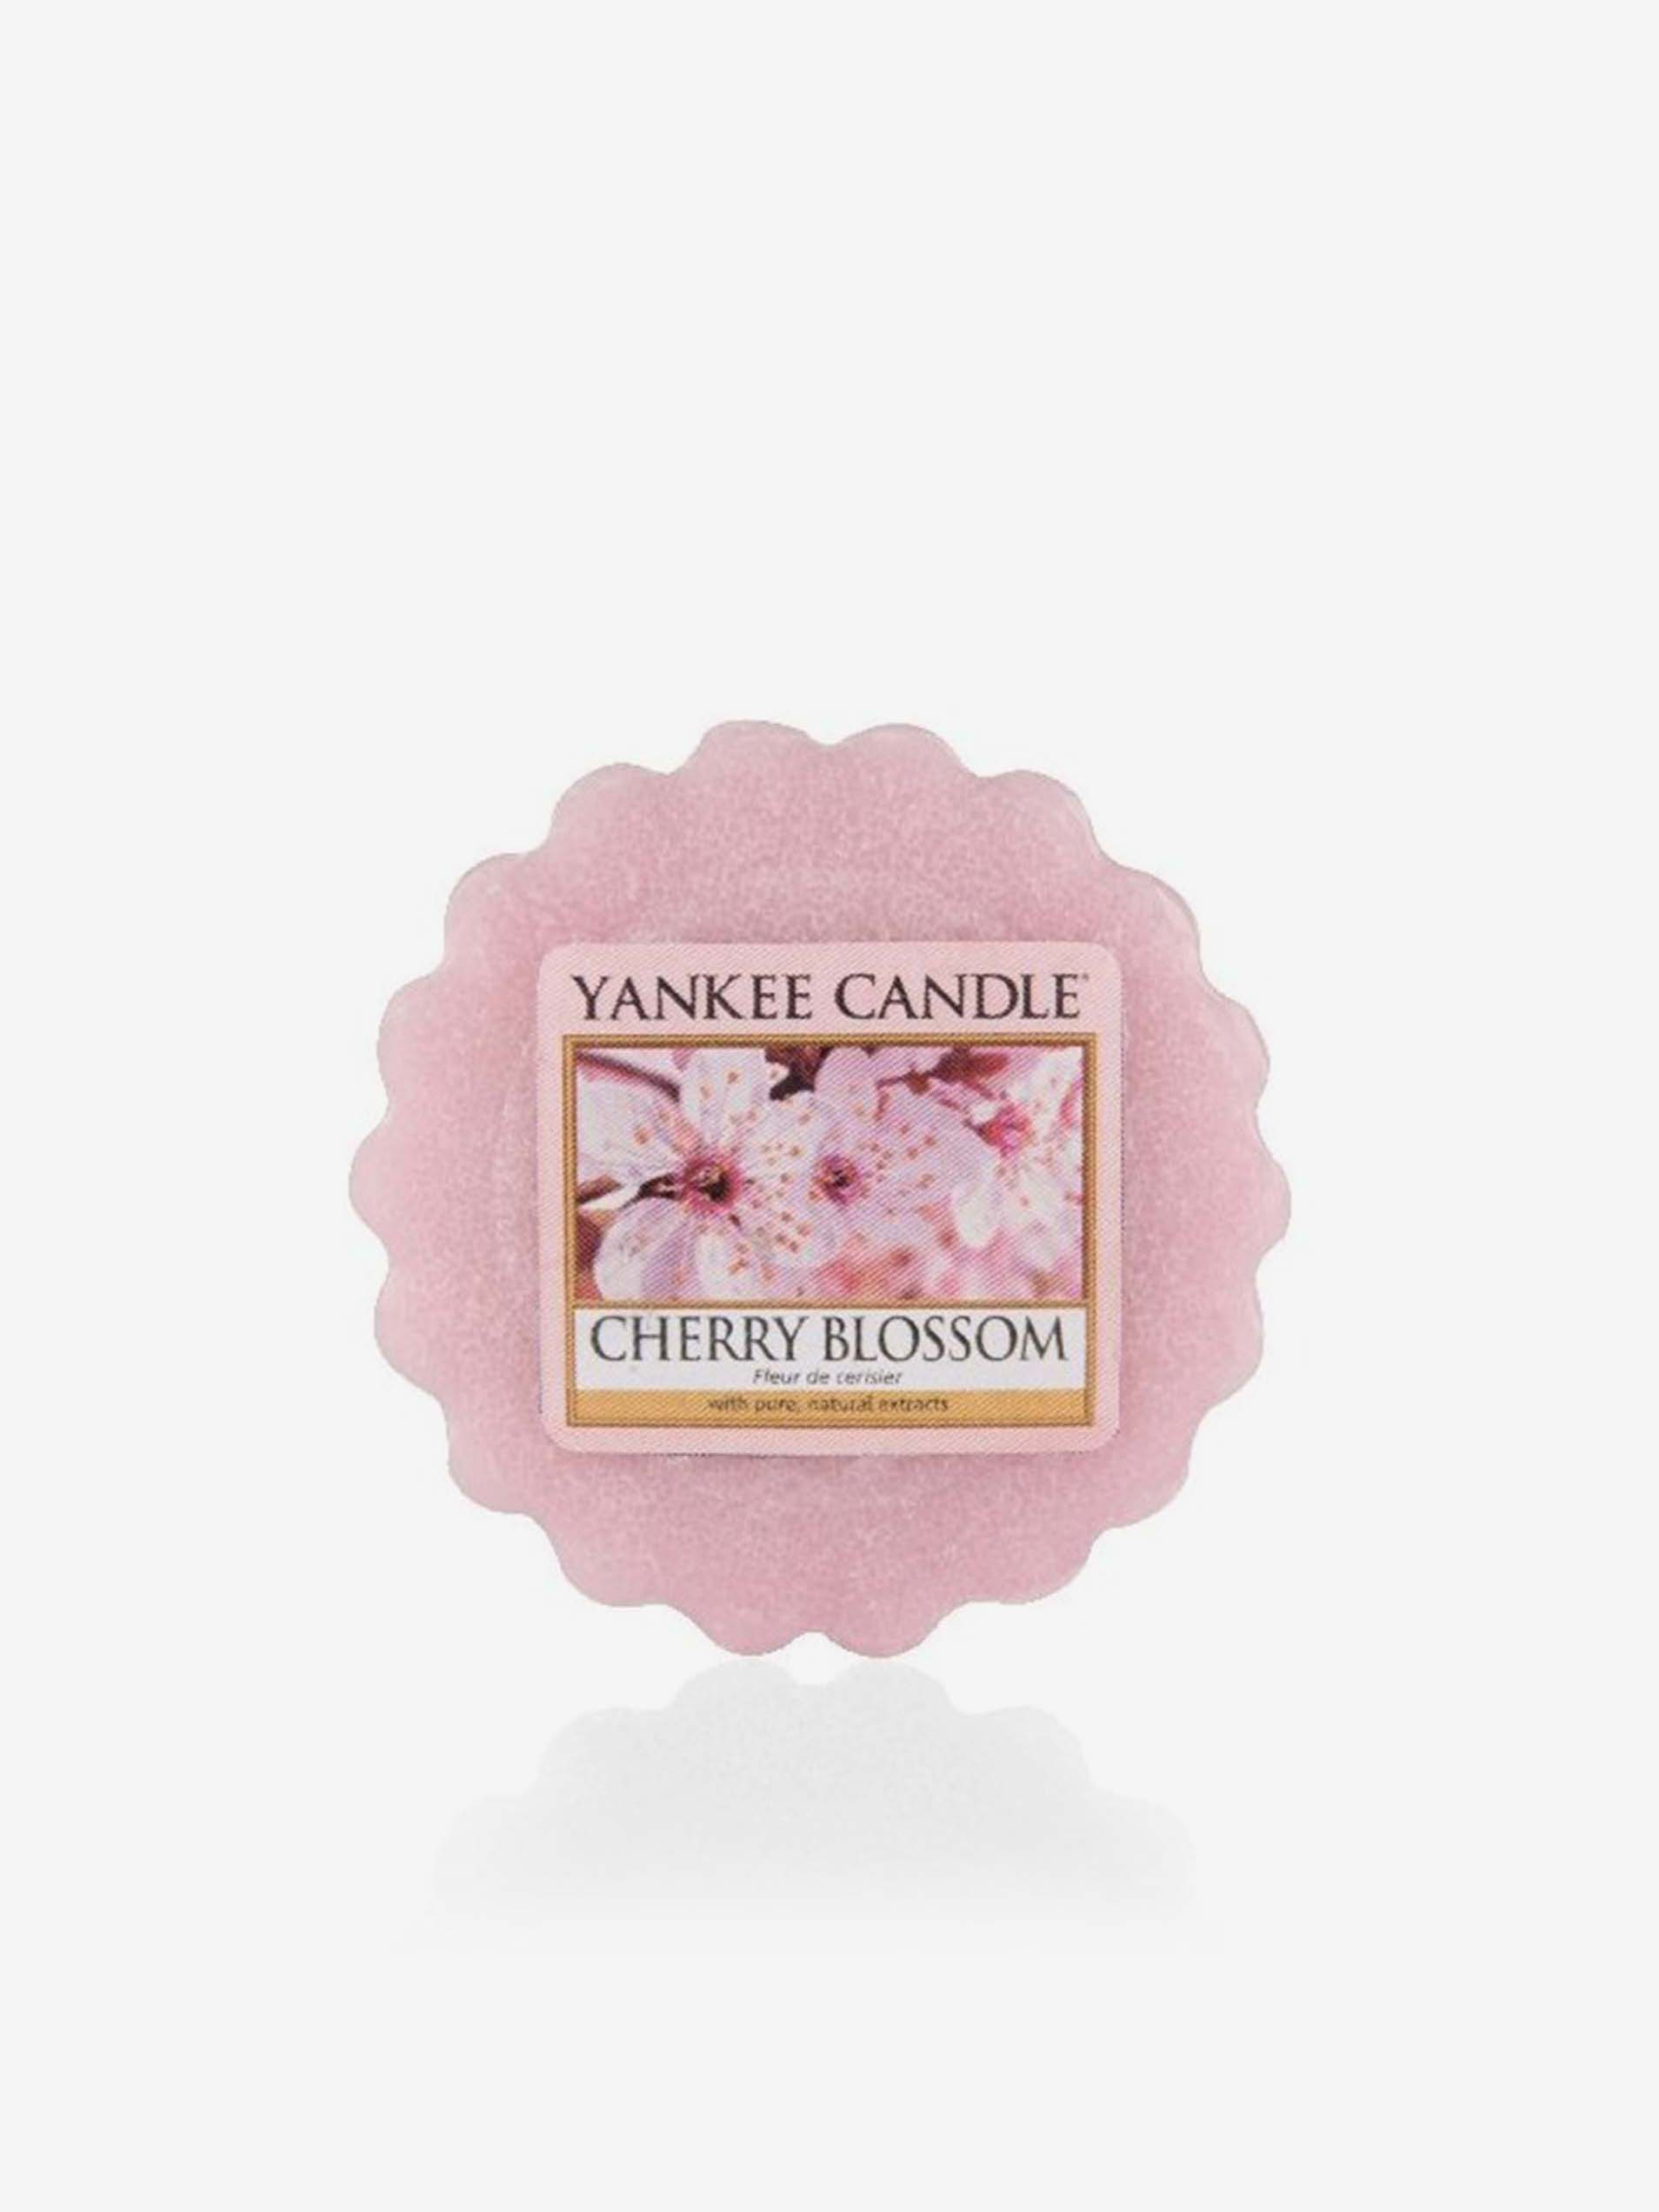 Yankee Candle vonný vosk do aromalampy Cherry Blossom